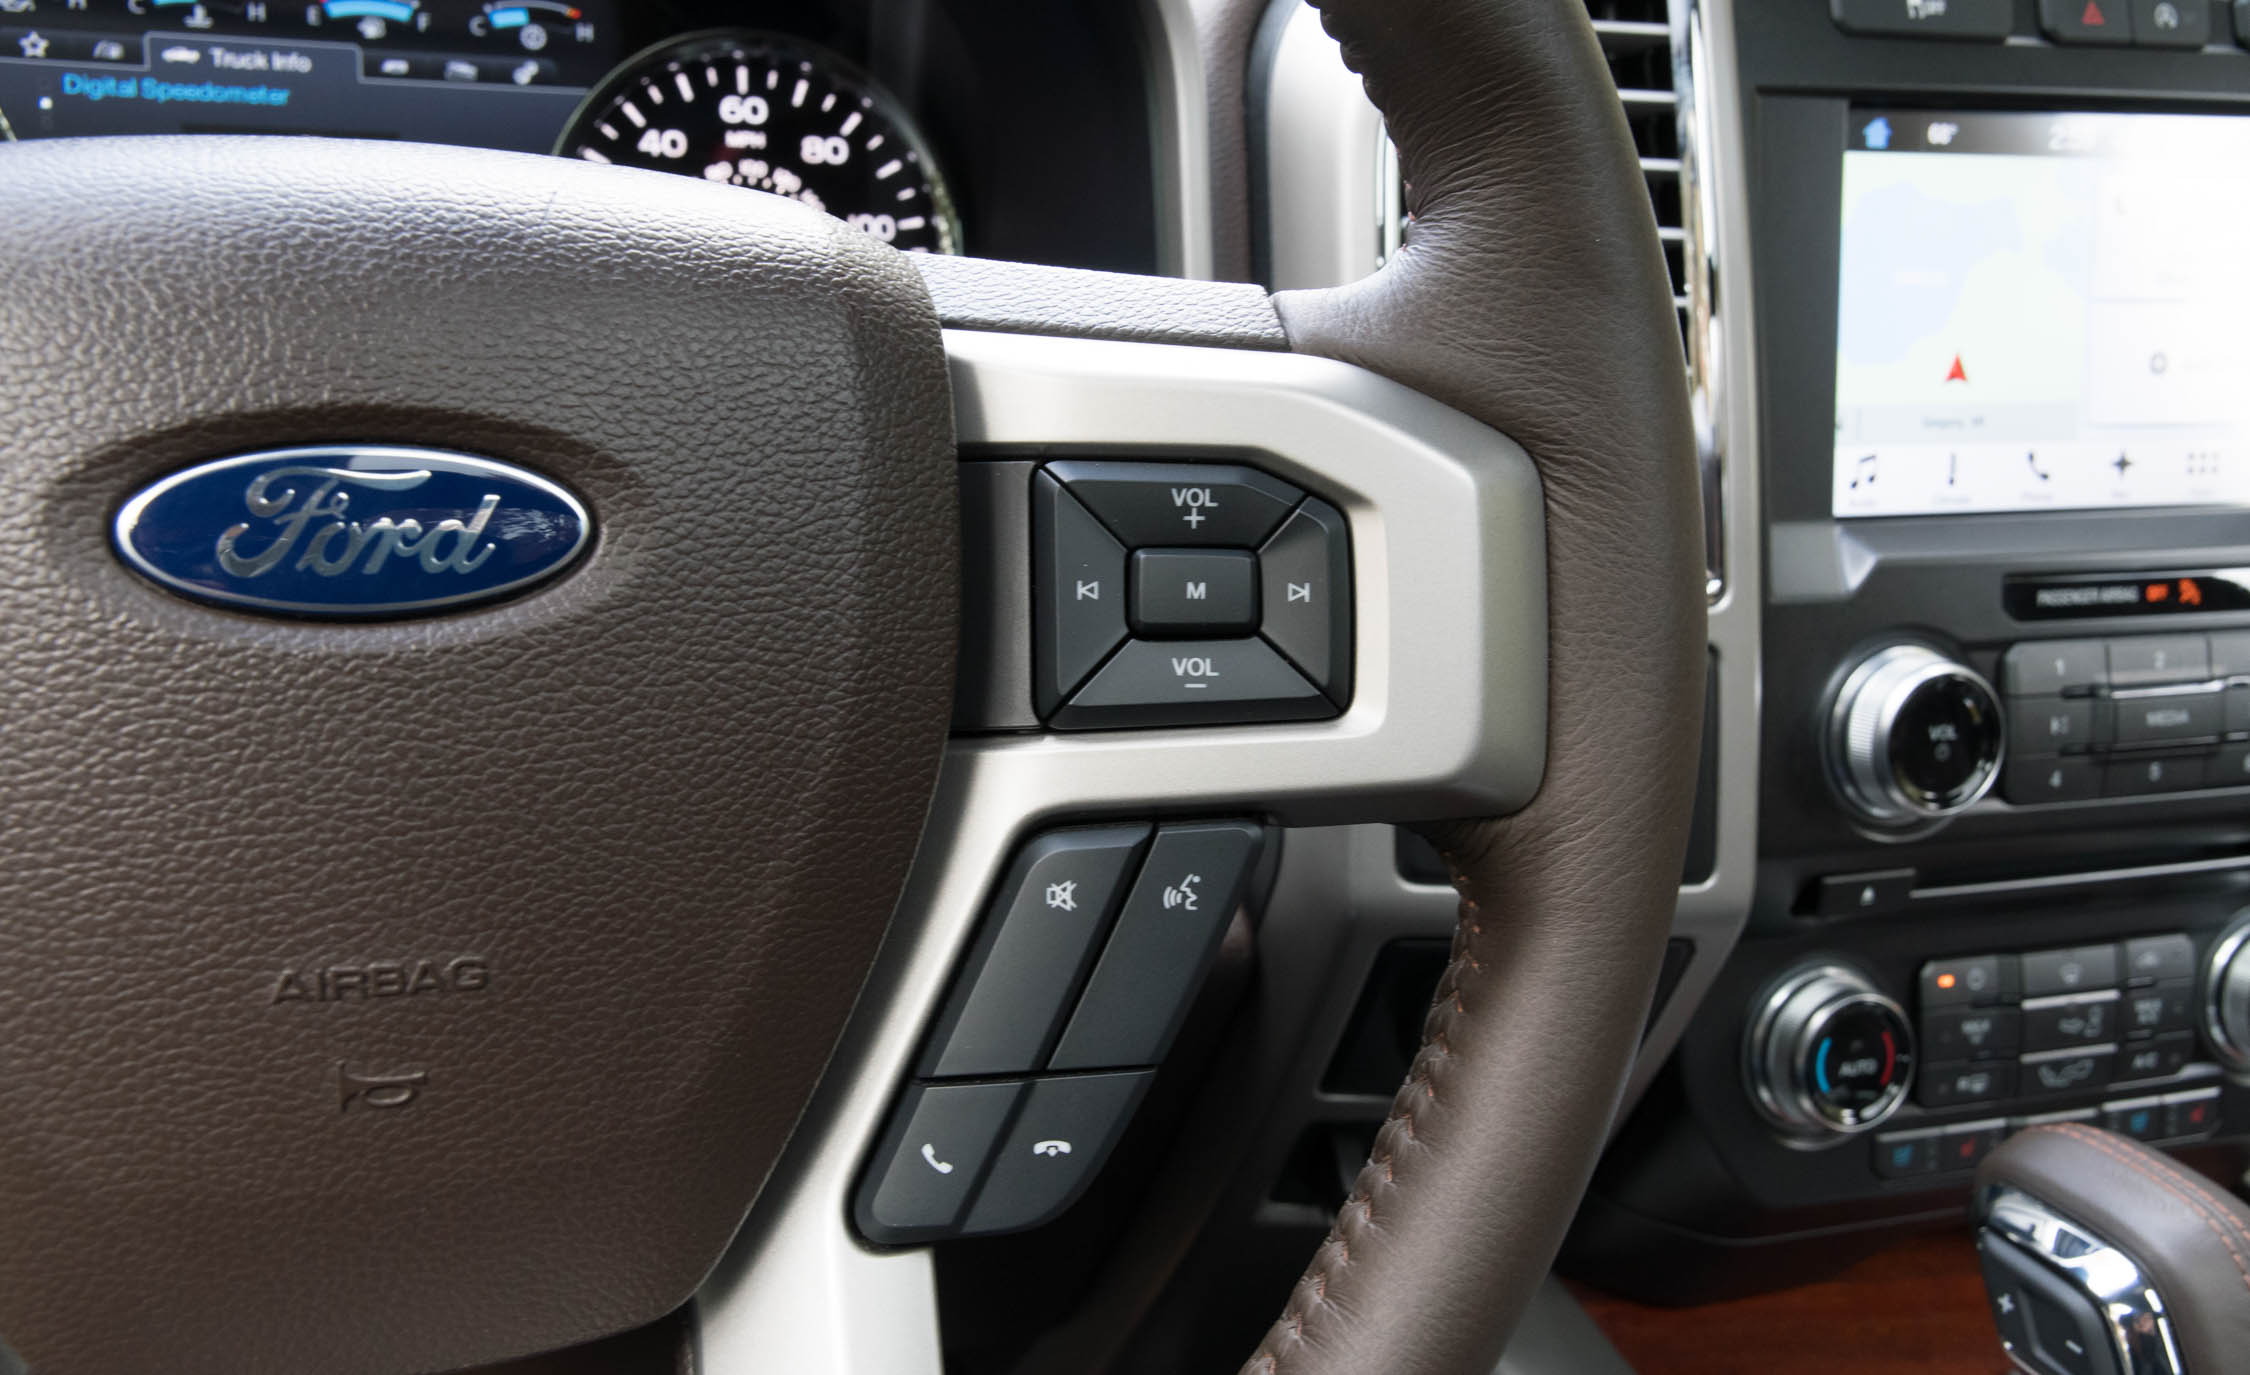 2017 Ford F 150 King Ranch Interior View Steering Controls (Photo 47 of 50)